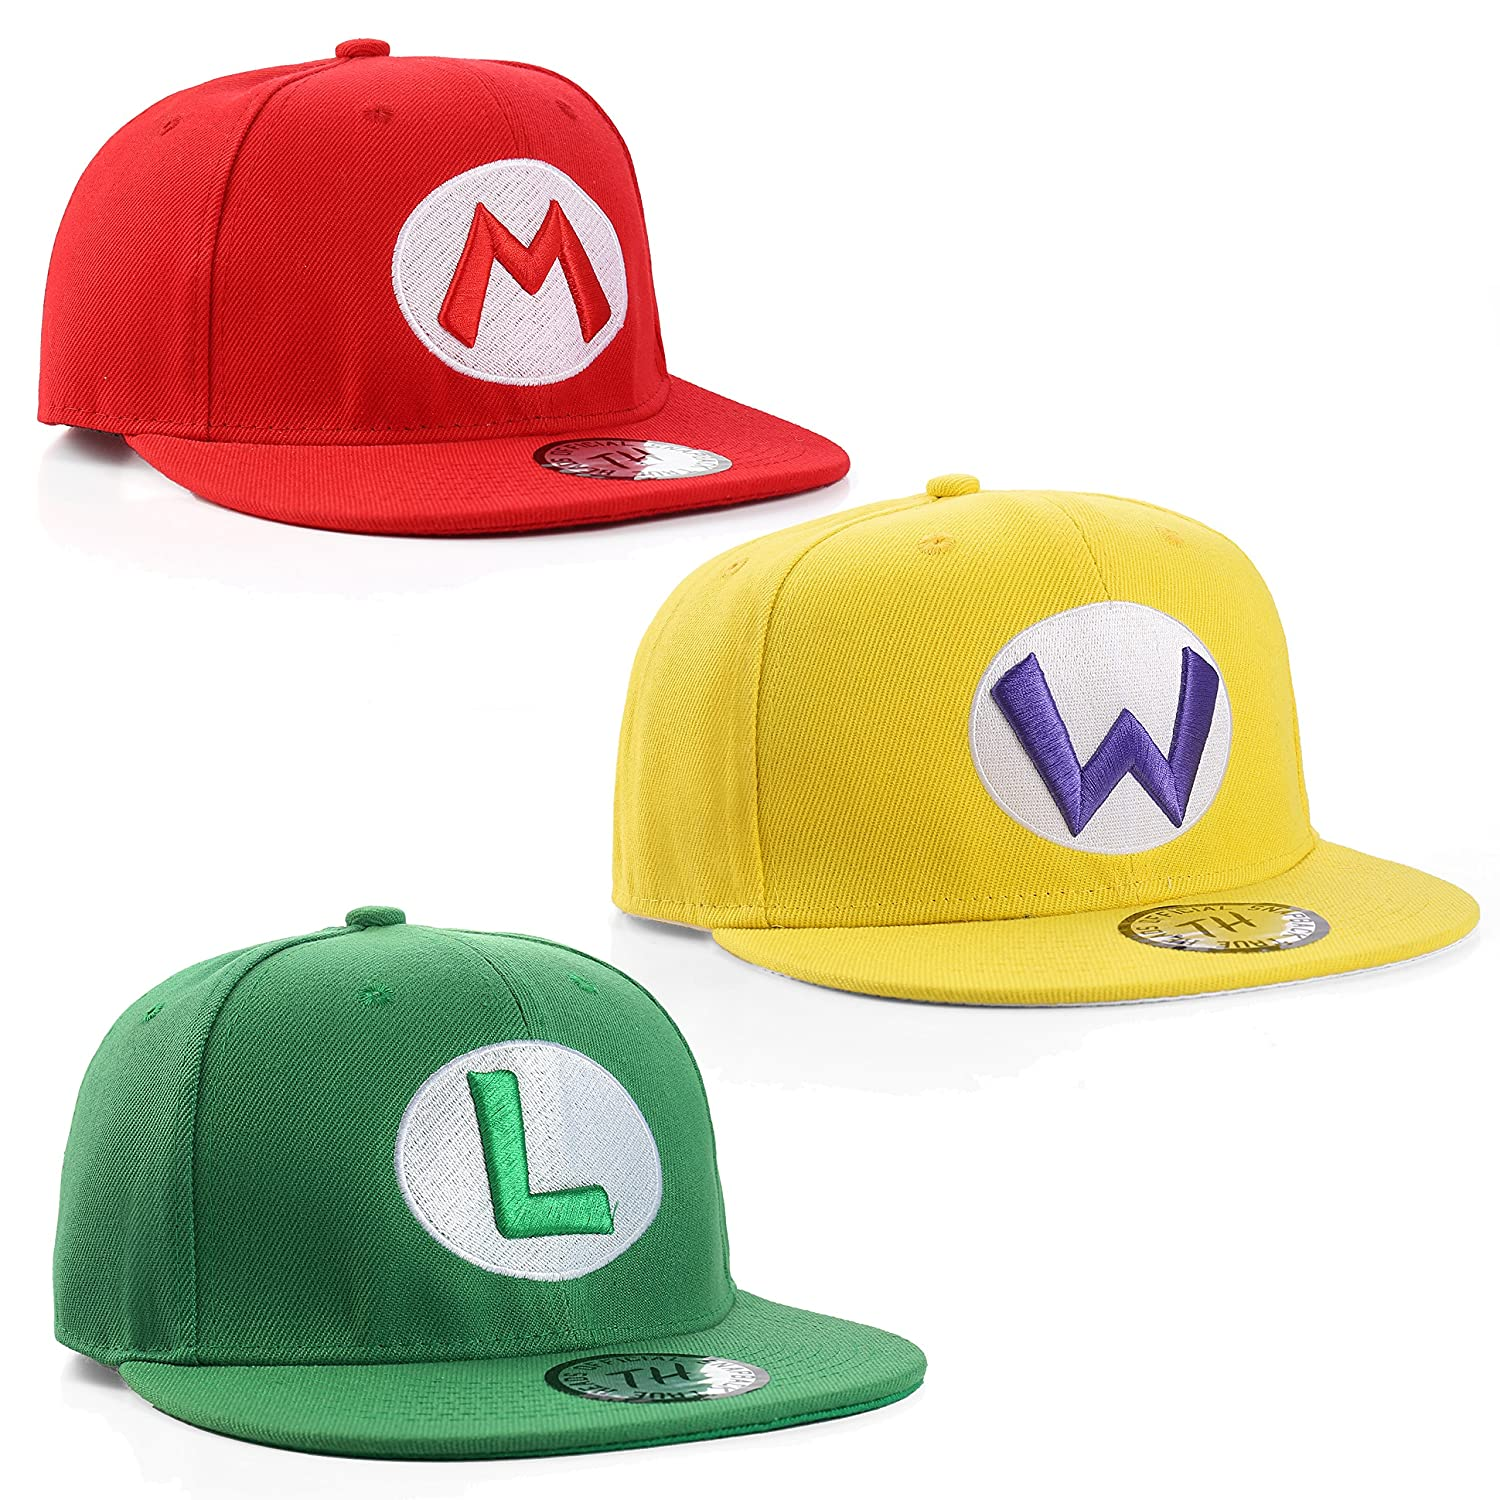 True Heads Super Mario, Luigi and Wario Snapback Baseball Caps Triple Pack TH-SM-TP-MLW